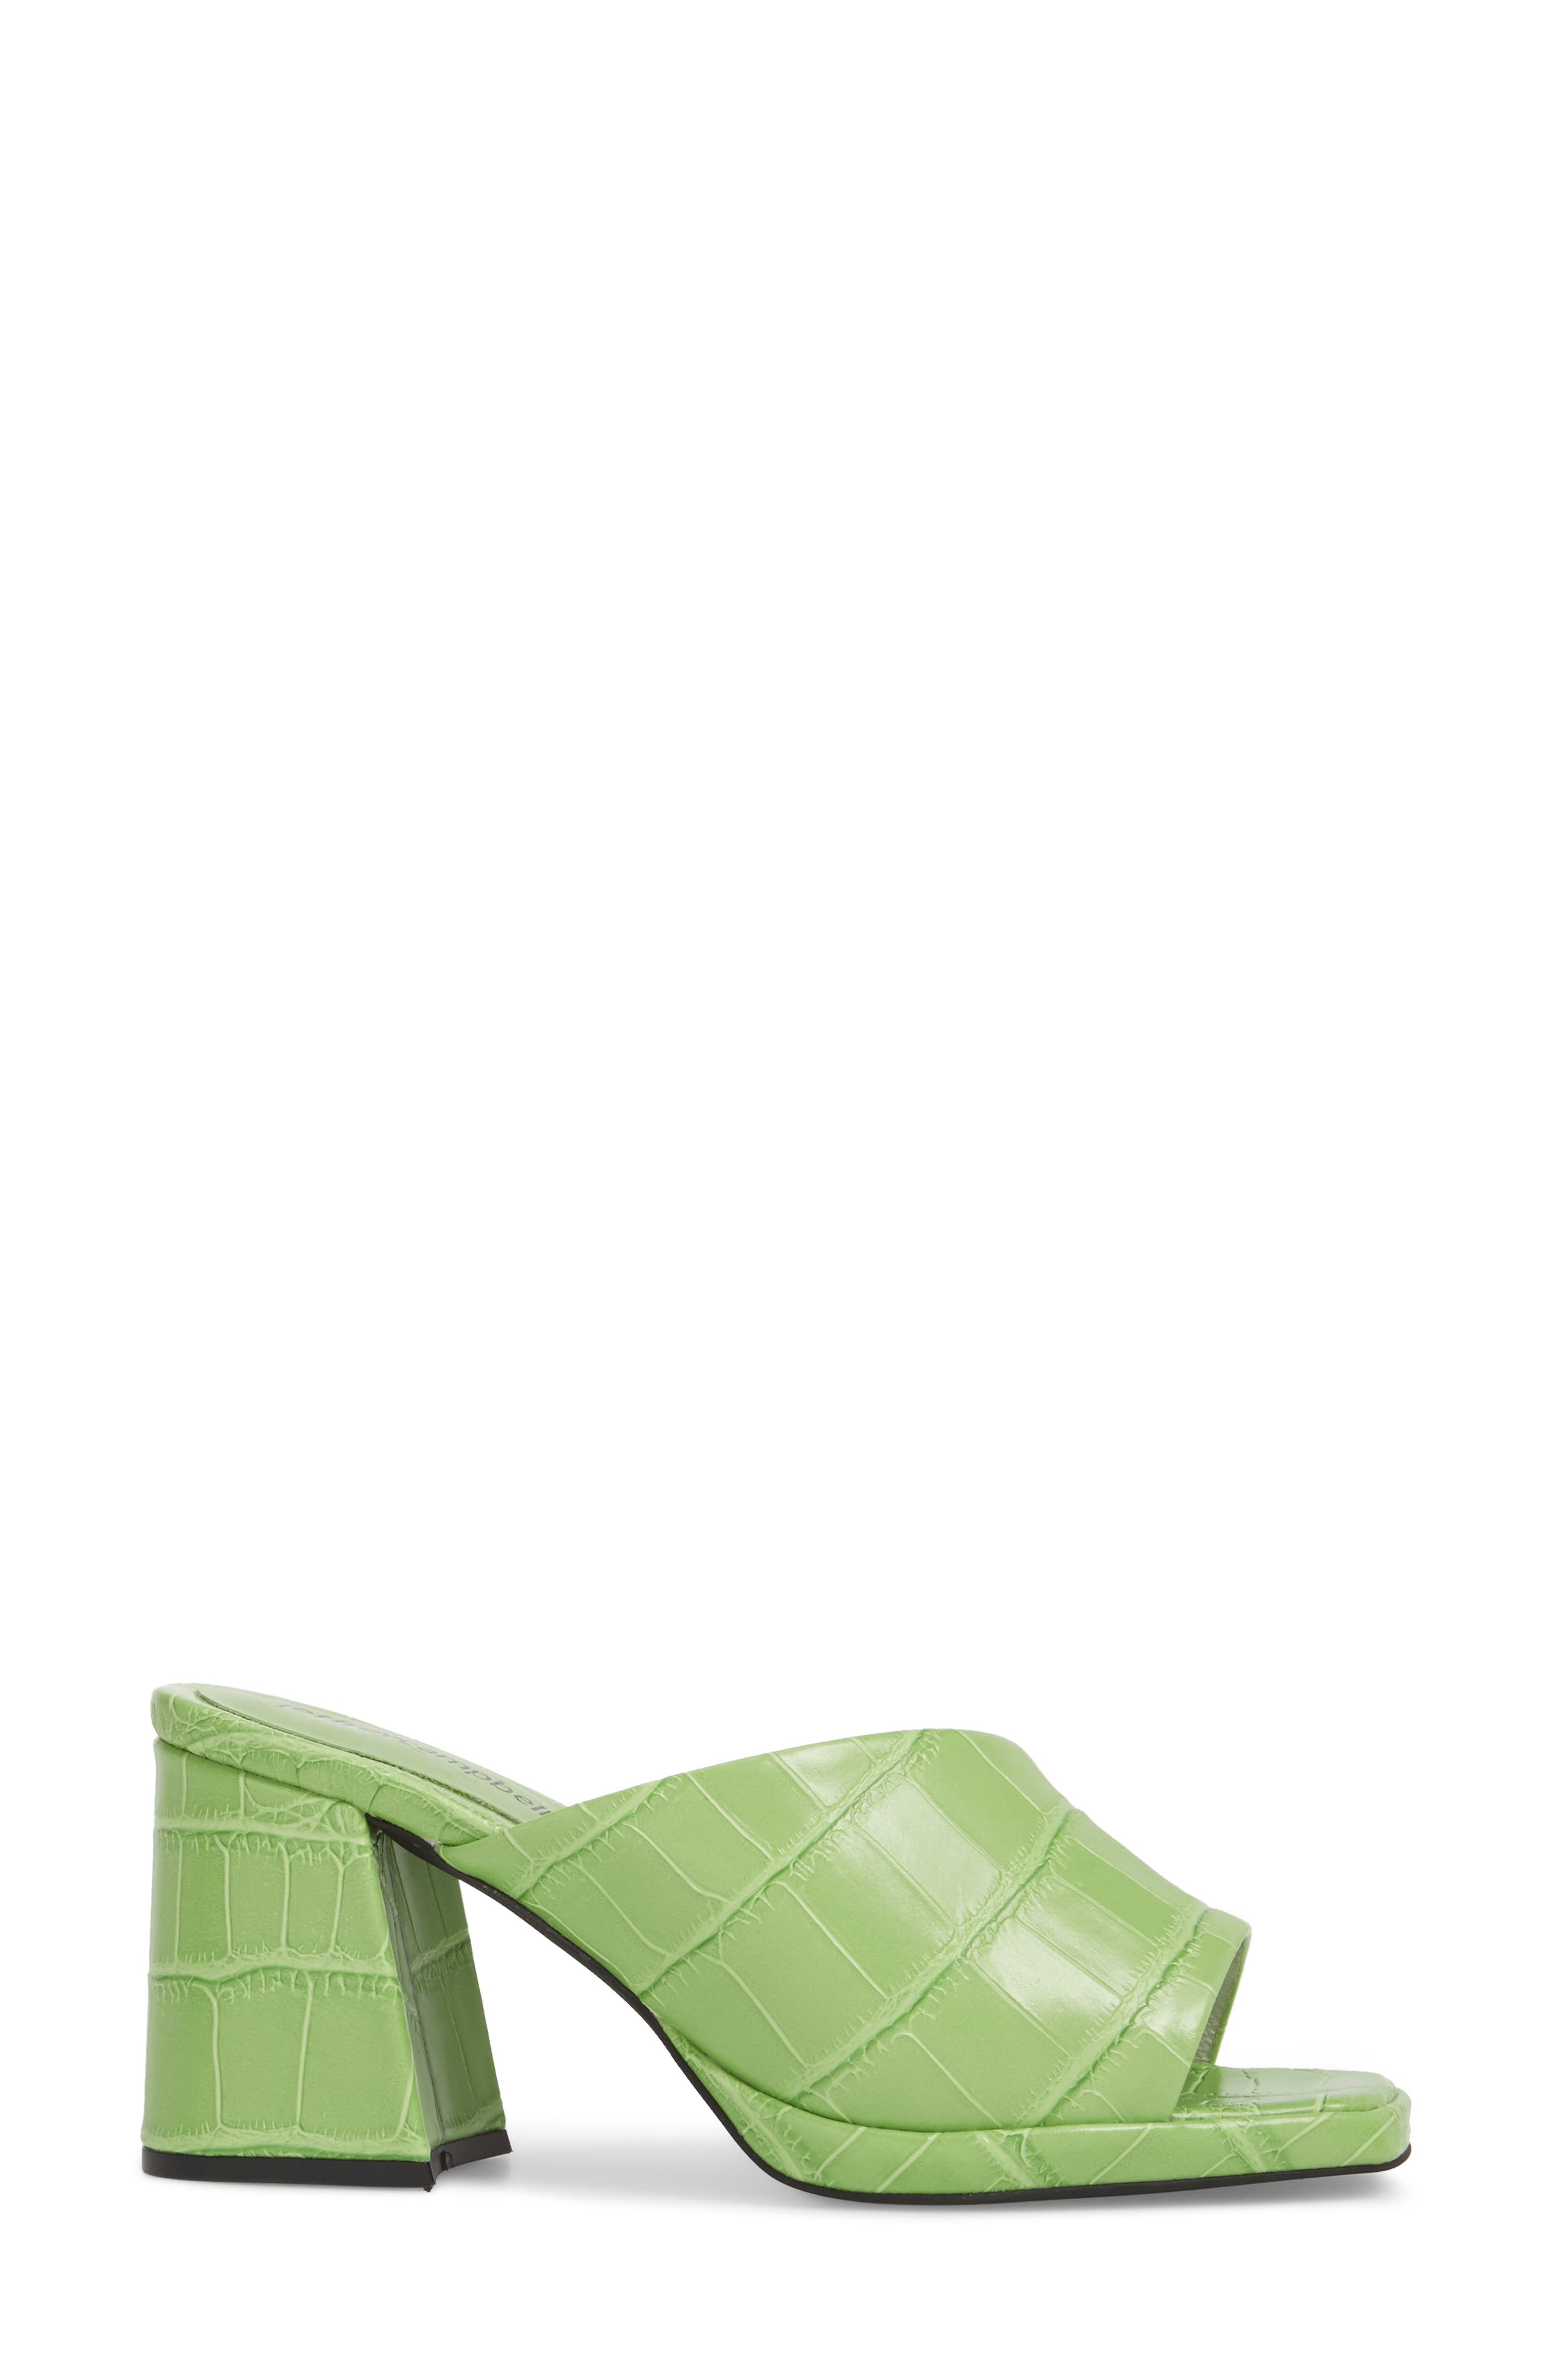 Suzuci Sandal,                             Alternate thumbnail 3, color,                             Green Leather